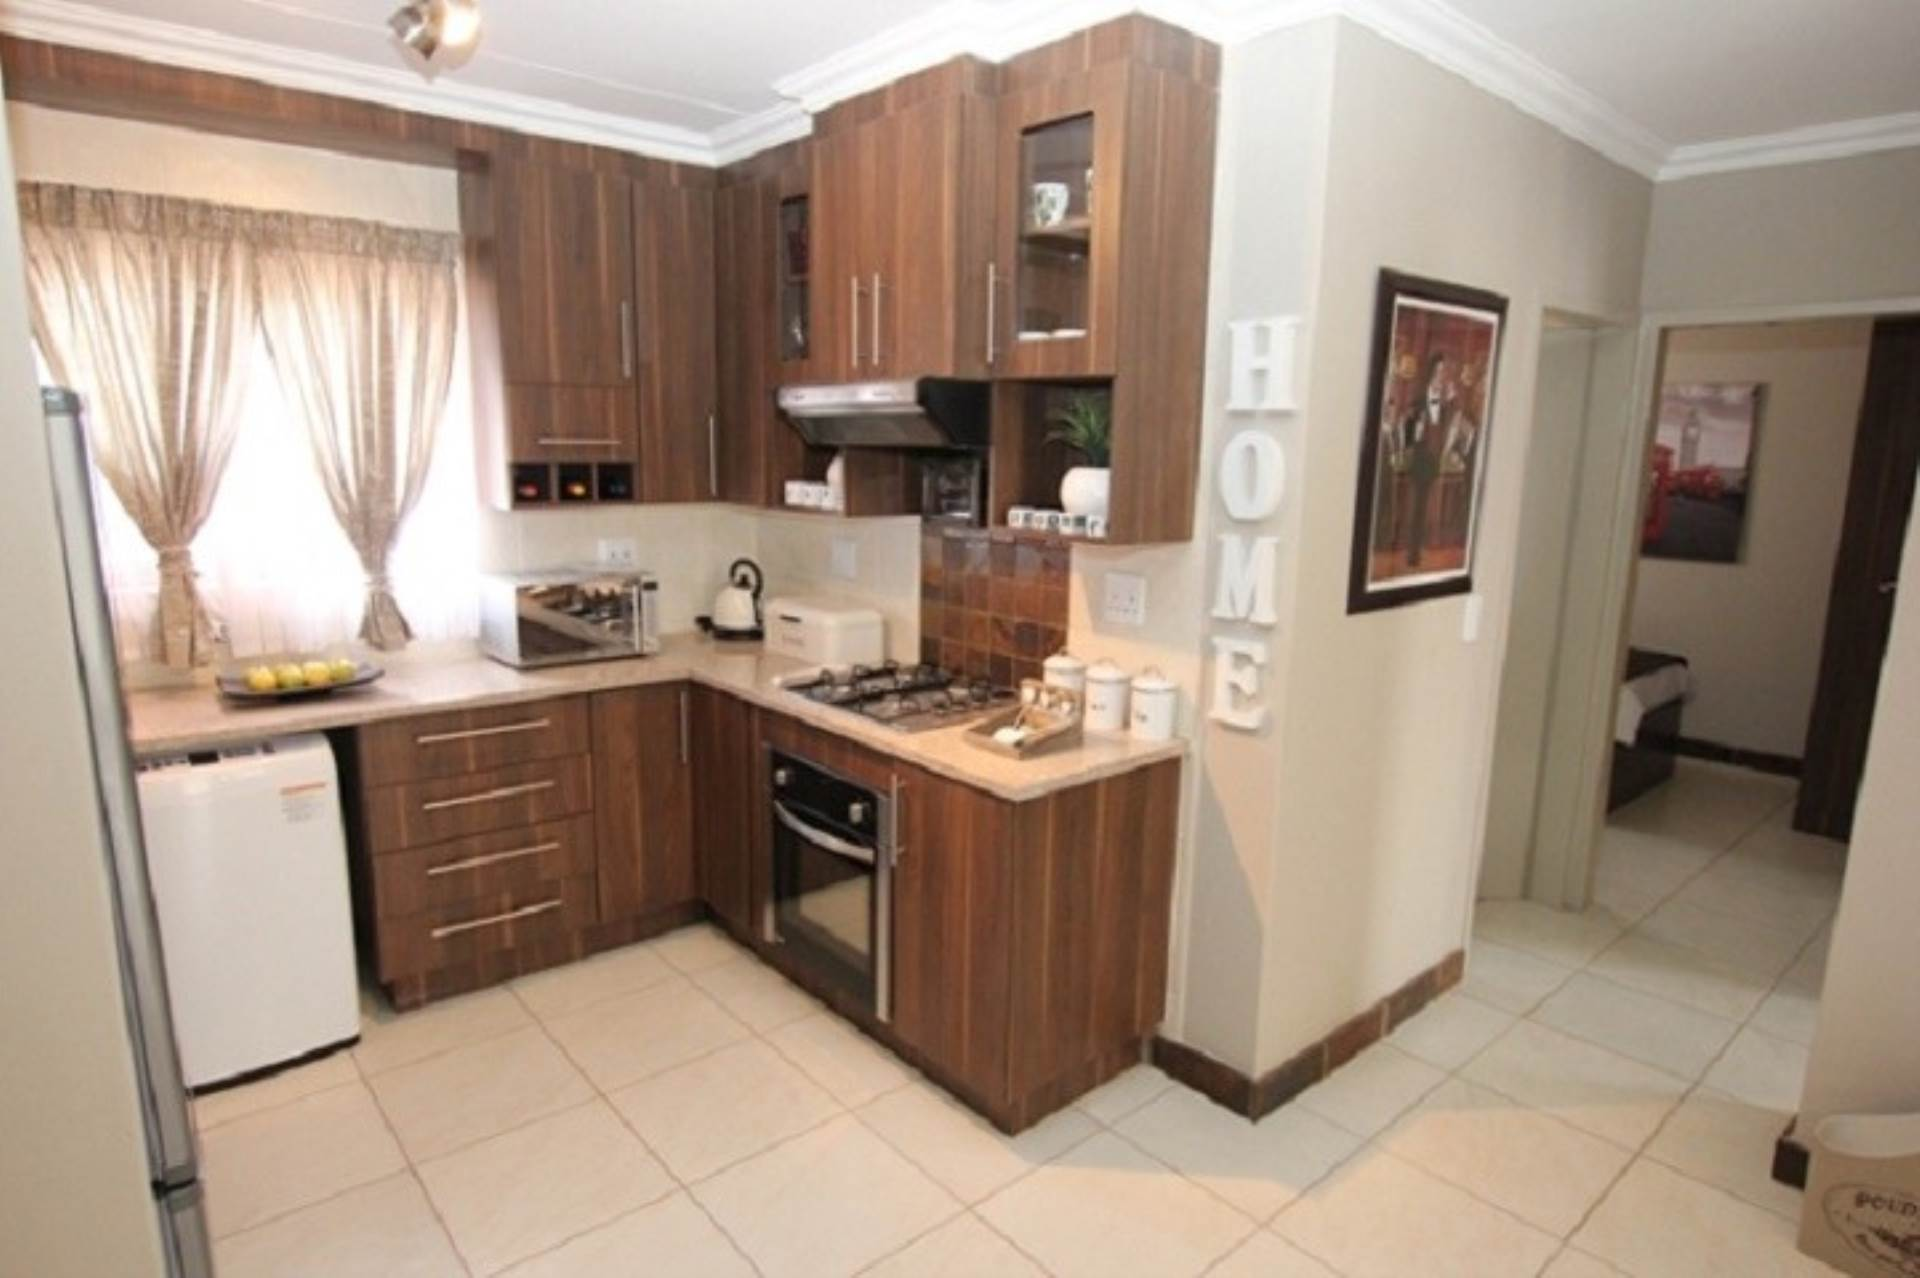 Property and Houses for sale in Daspoort, Townhouse, 2 Bedrooms - ZAR 682,500